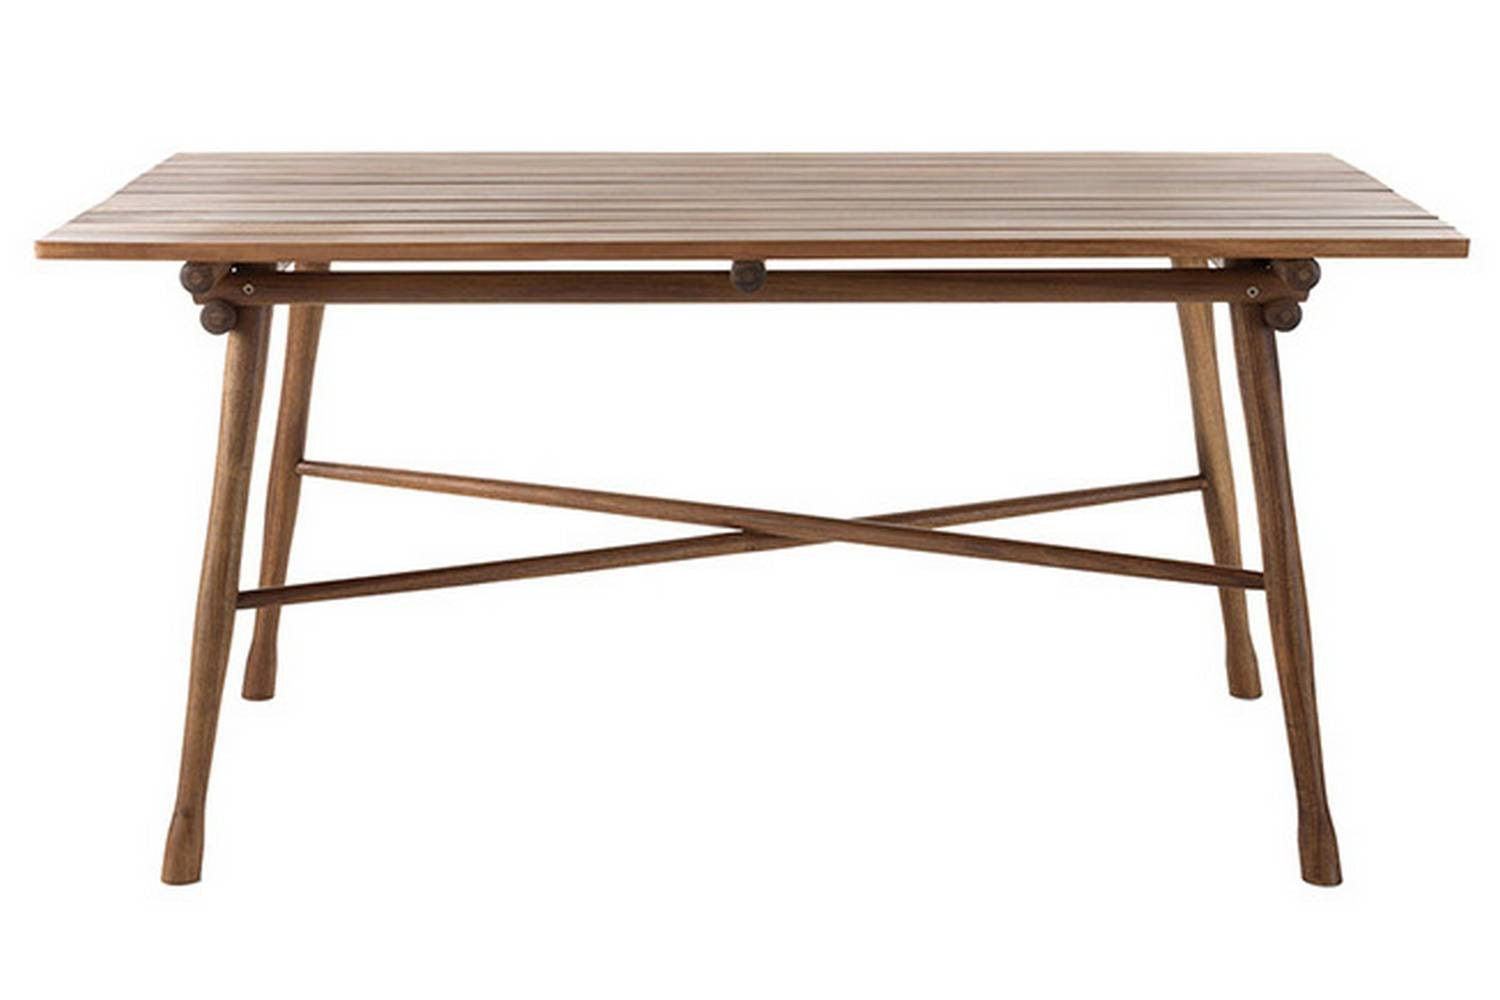 Garten Table by Gebruder Thonet Vienna for Wiener GTV Design